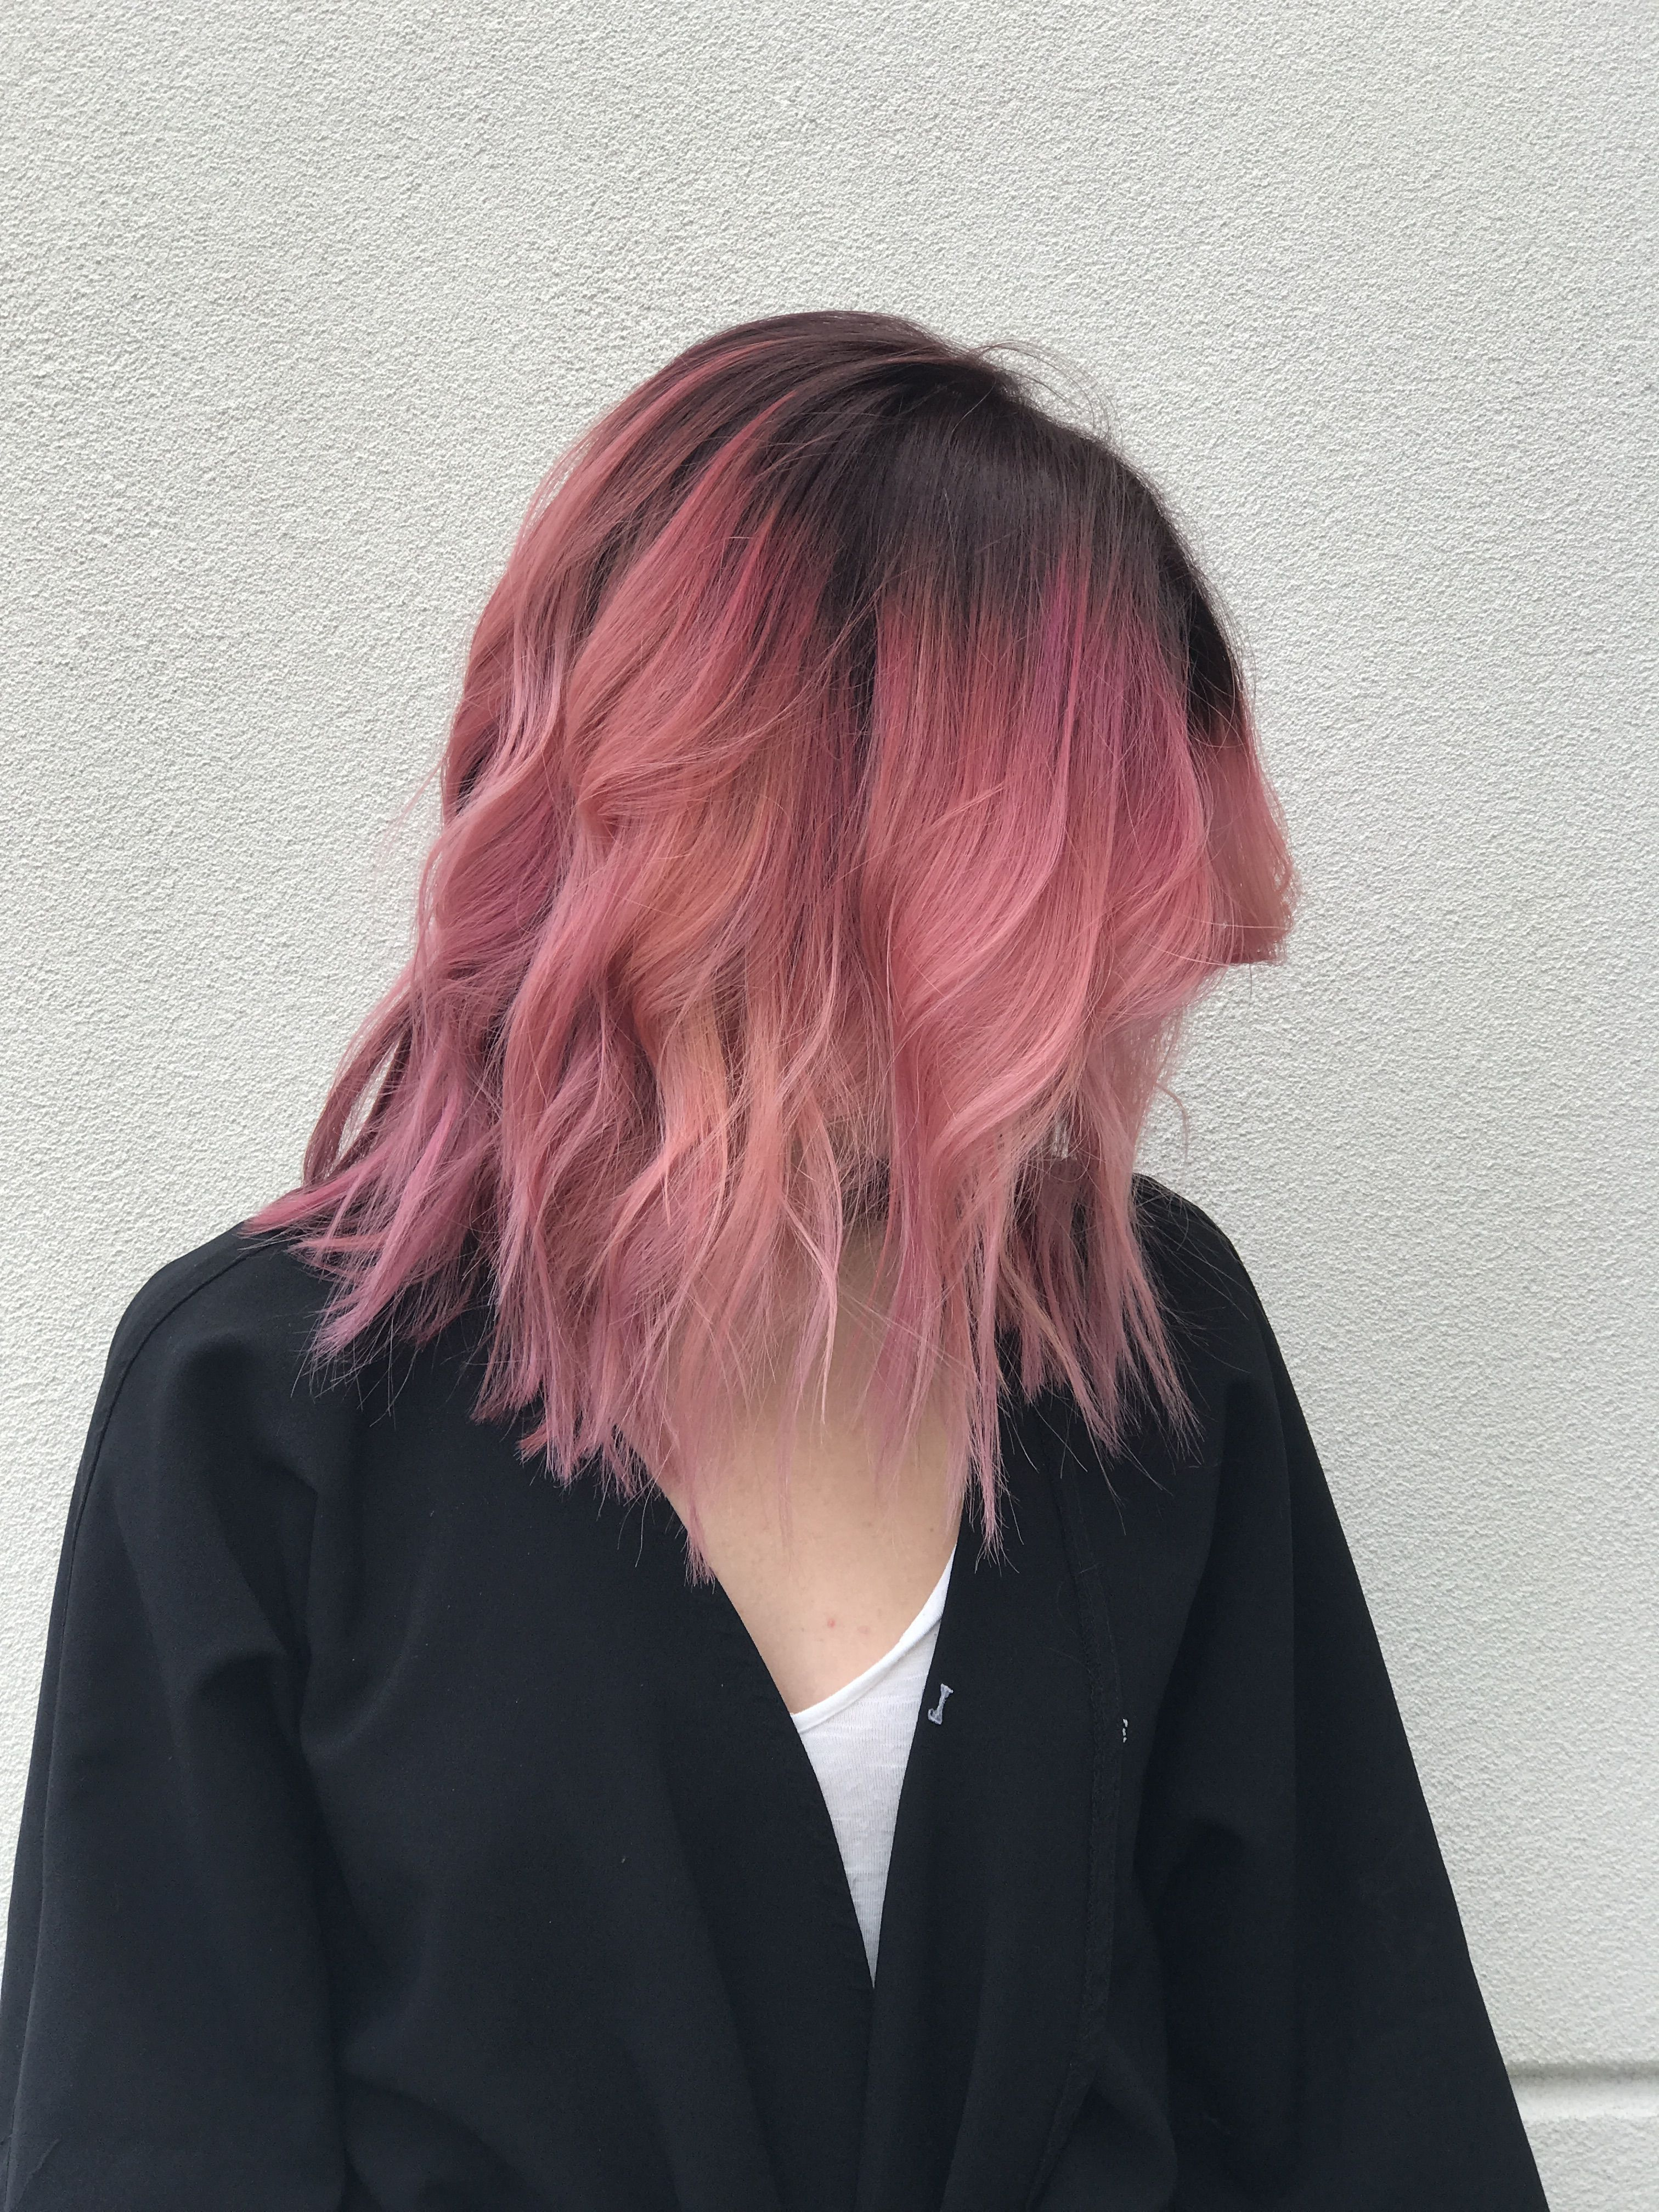 Dark Roots Pink Hair Dark Pink Hair Hair Styles Hair Color Dark